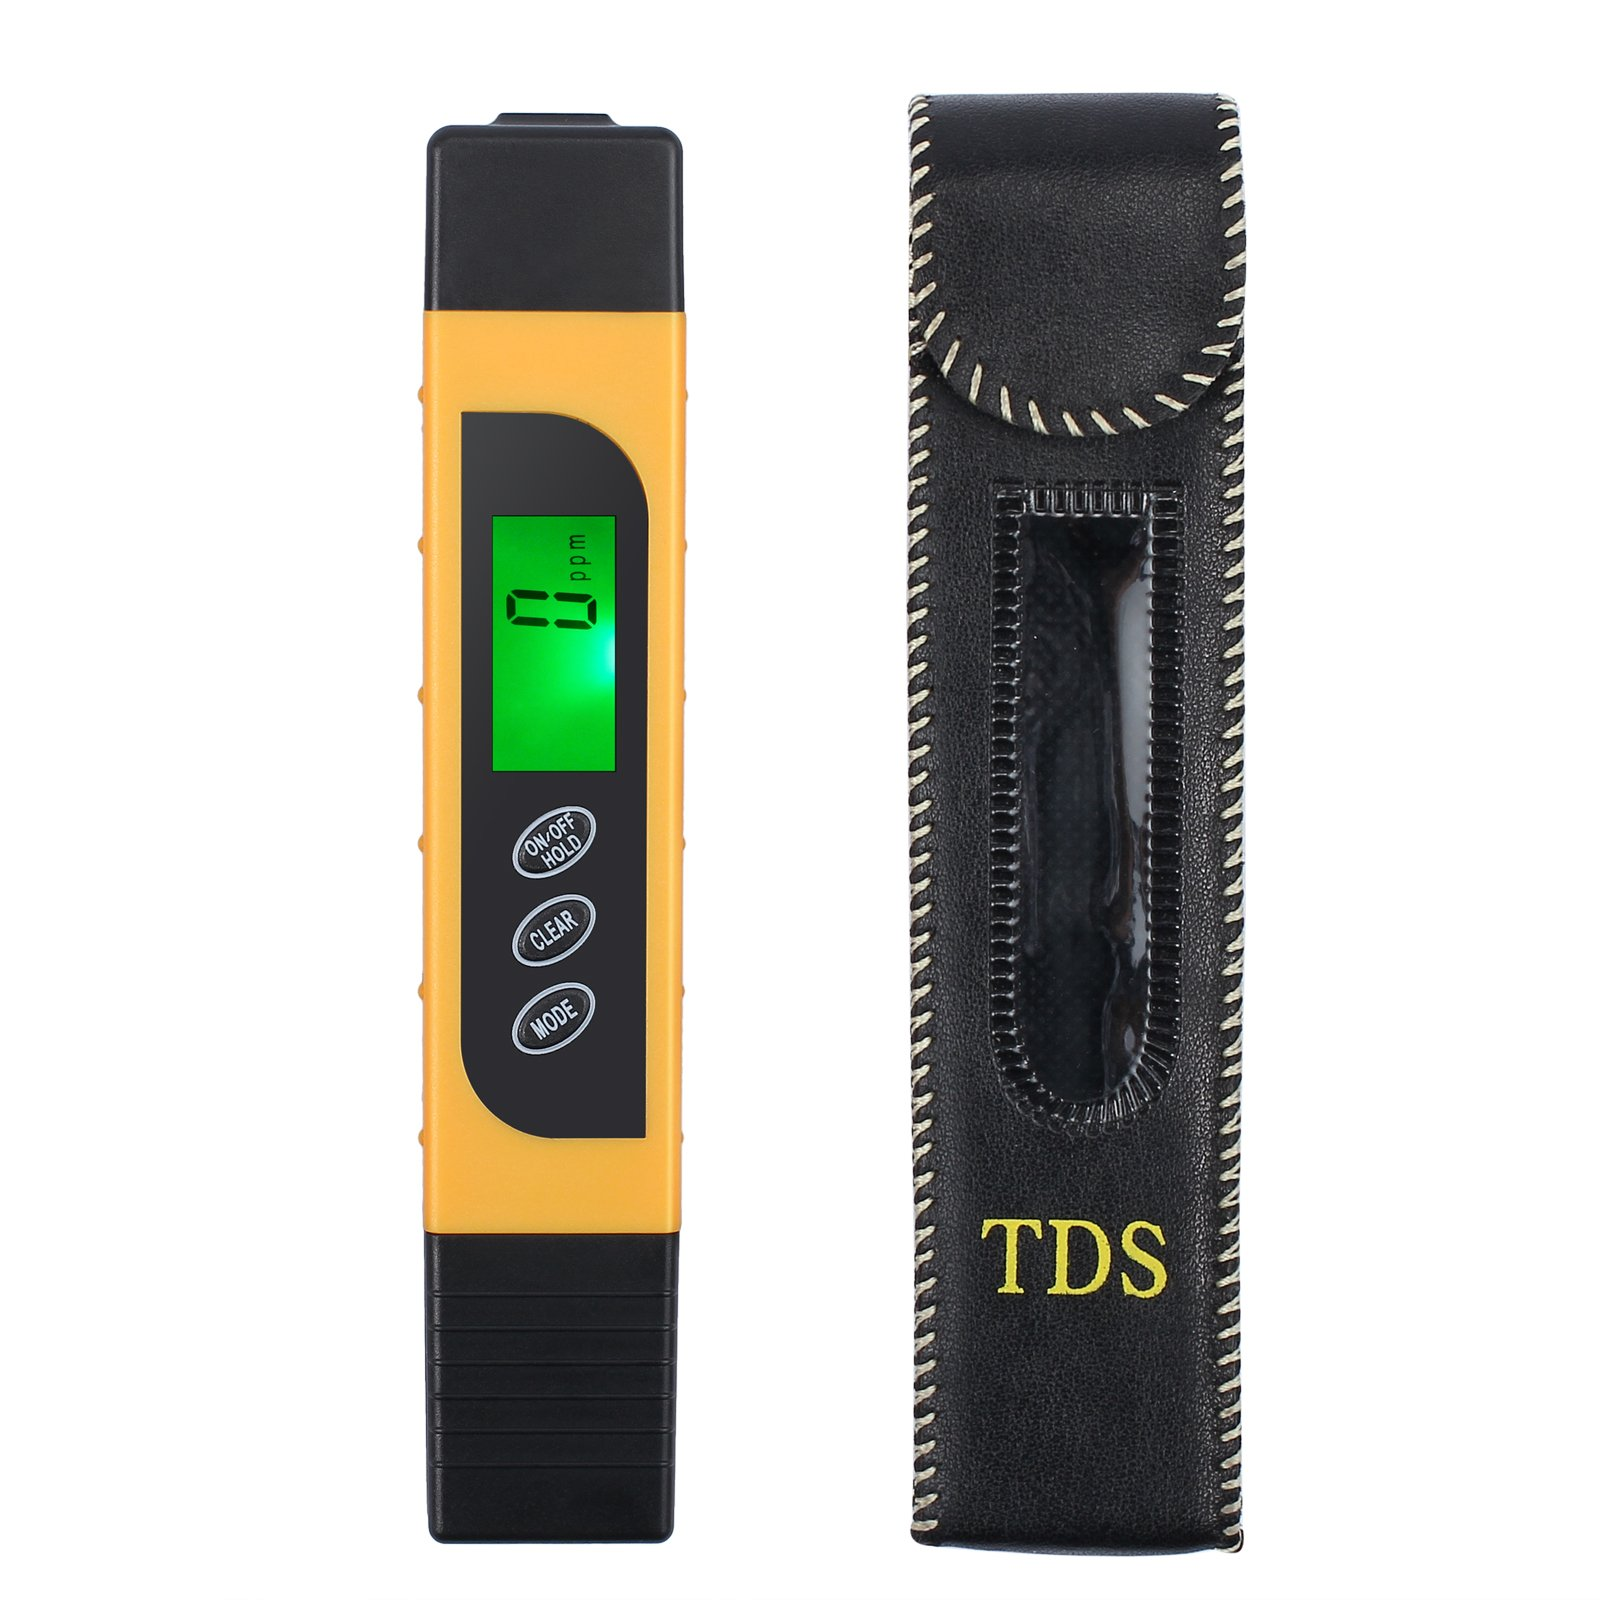 Proster Digital Water Quality Tester Digital TDS EC Meter 0-9990 Range Multifunctional Water Purity Temperature Meter for Drinking Water Swimming Pools Spas Aquarium Hydroponics Purifiers and Filters